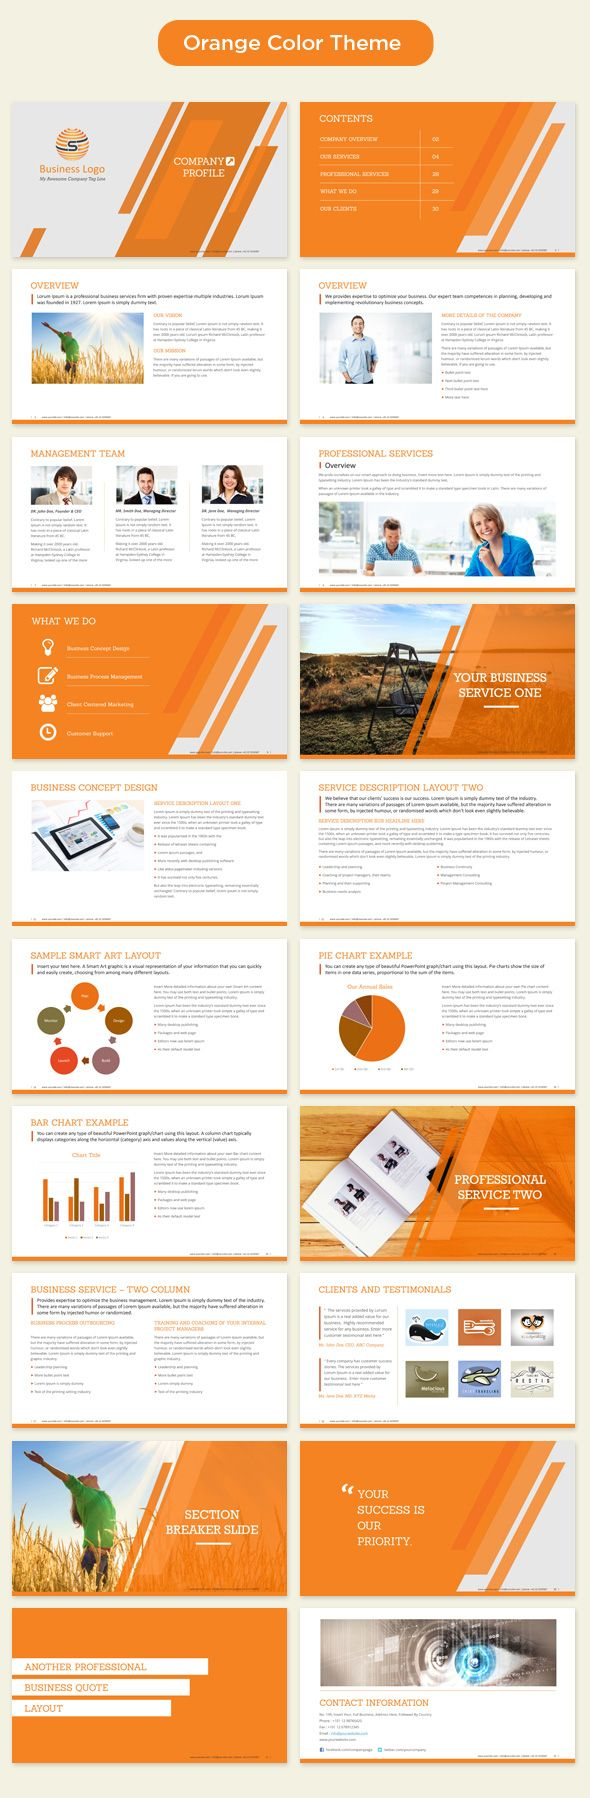 Company profile template PowerPoint The template is available in – Company Profile Template Microsoft